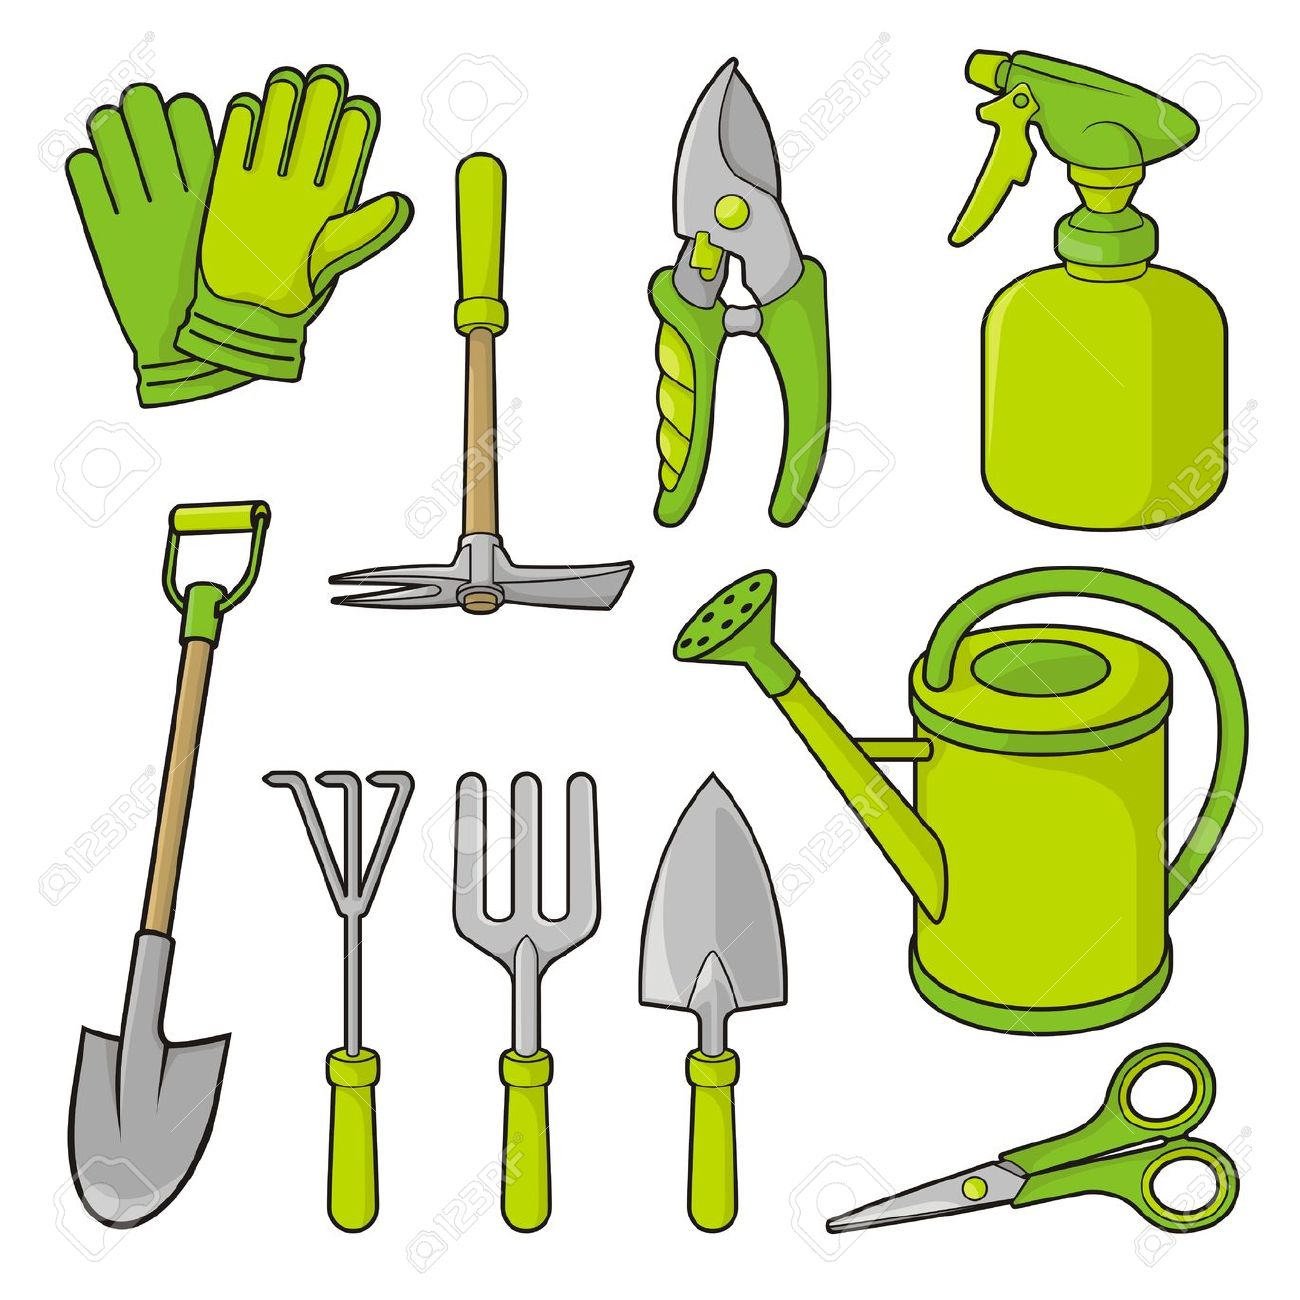 Home design ideas garden tools clipart for Gardening tools clipart